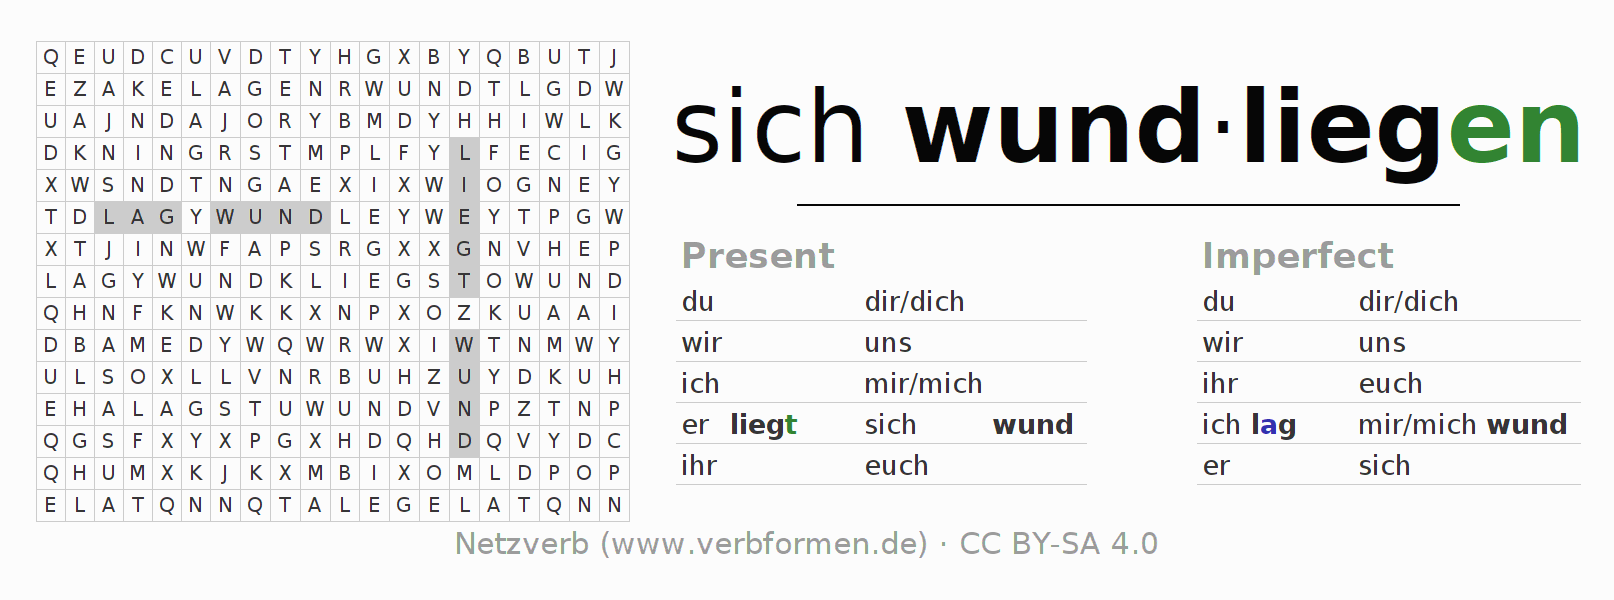 Word search puzzle for the conjugation of the verb sich wundliegen